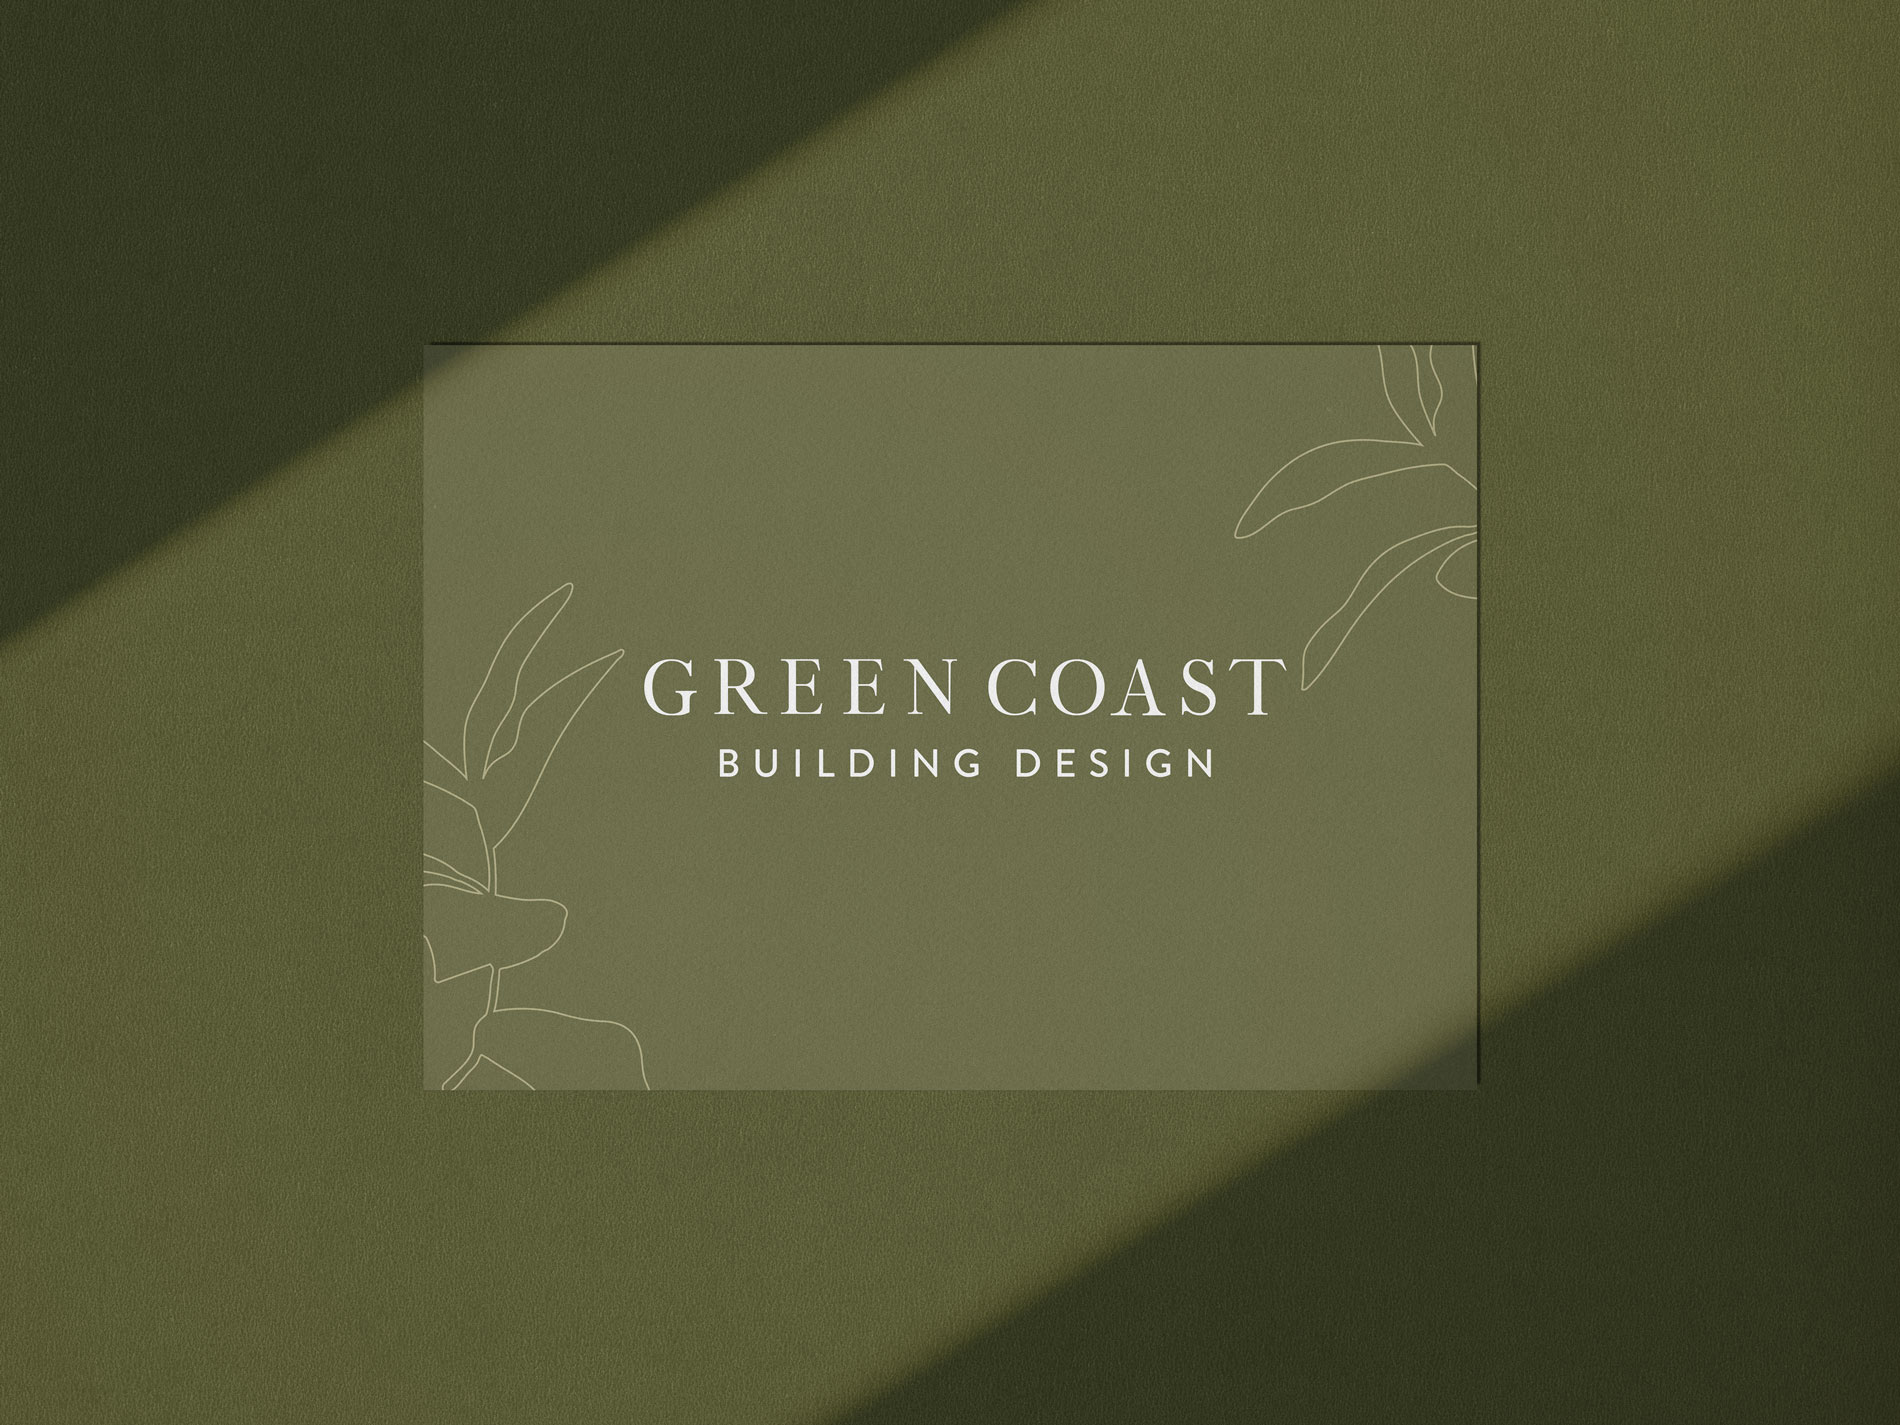 La Fin Branding greencoast building design